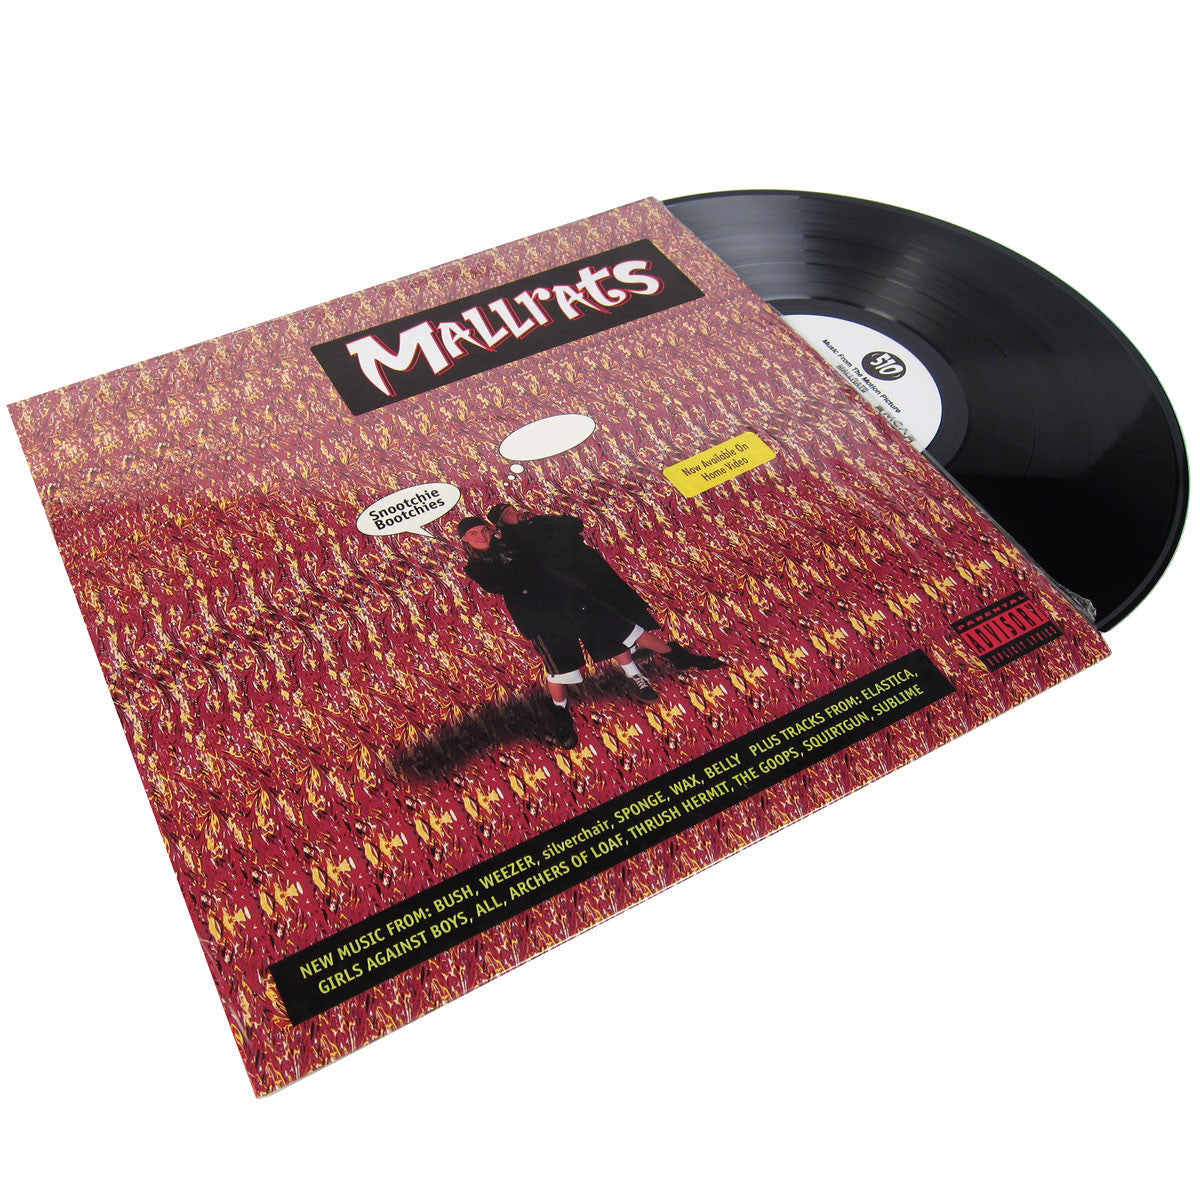 Mallrats: Mallrats OST (Original Pressing) LP - Deadstock